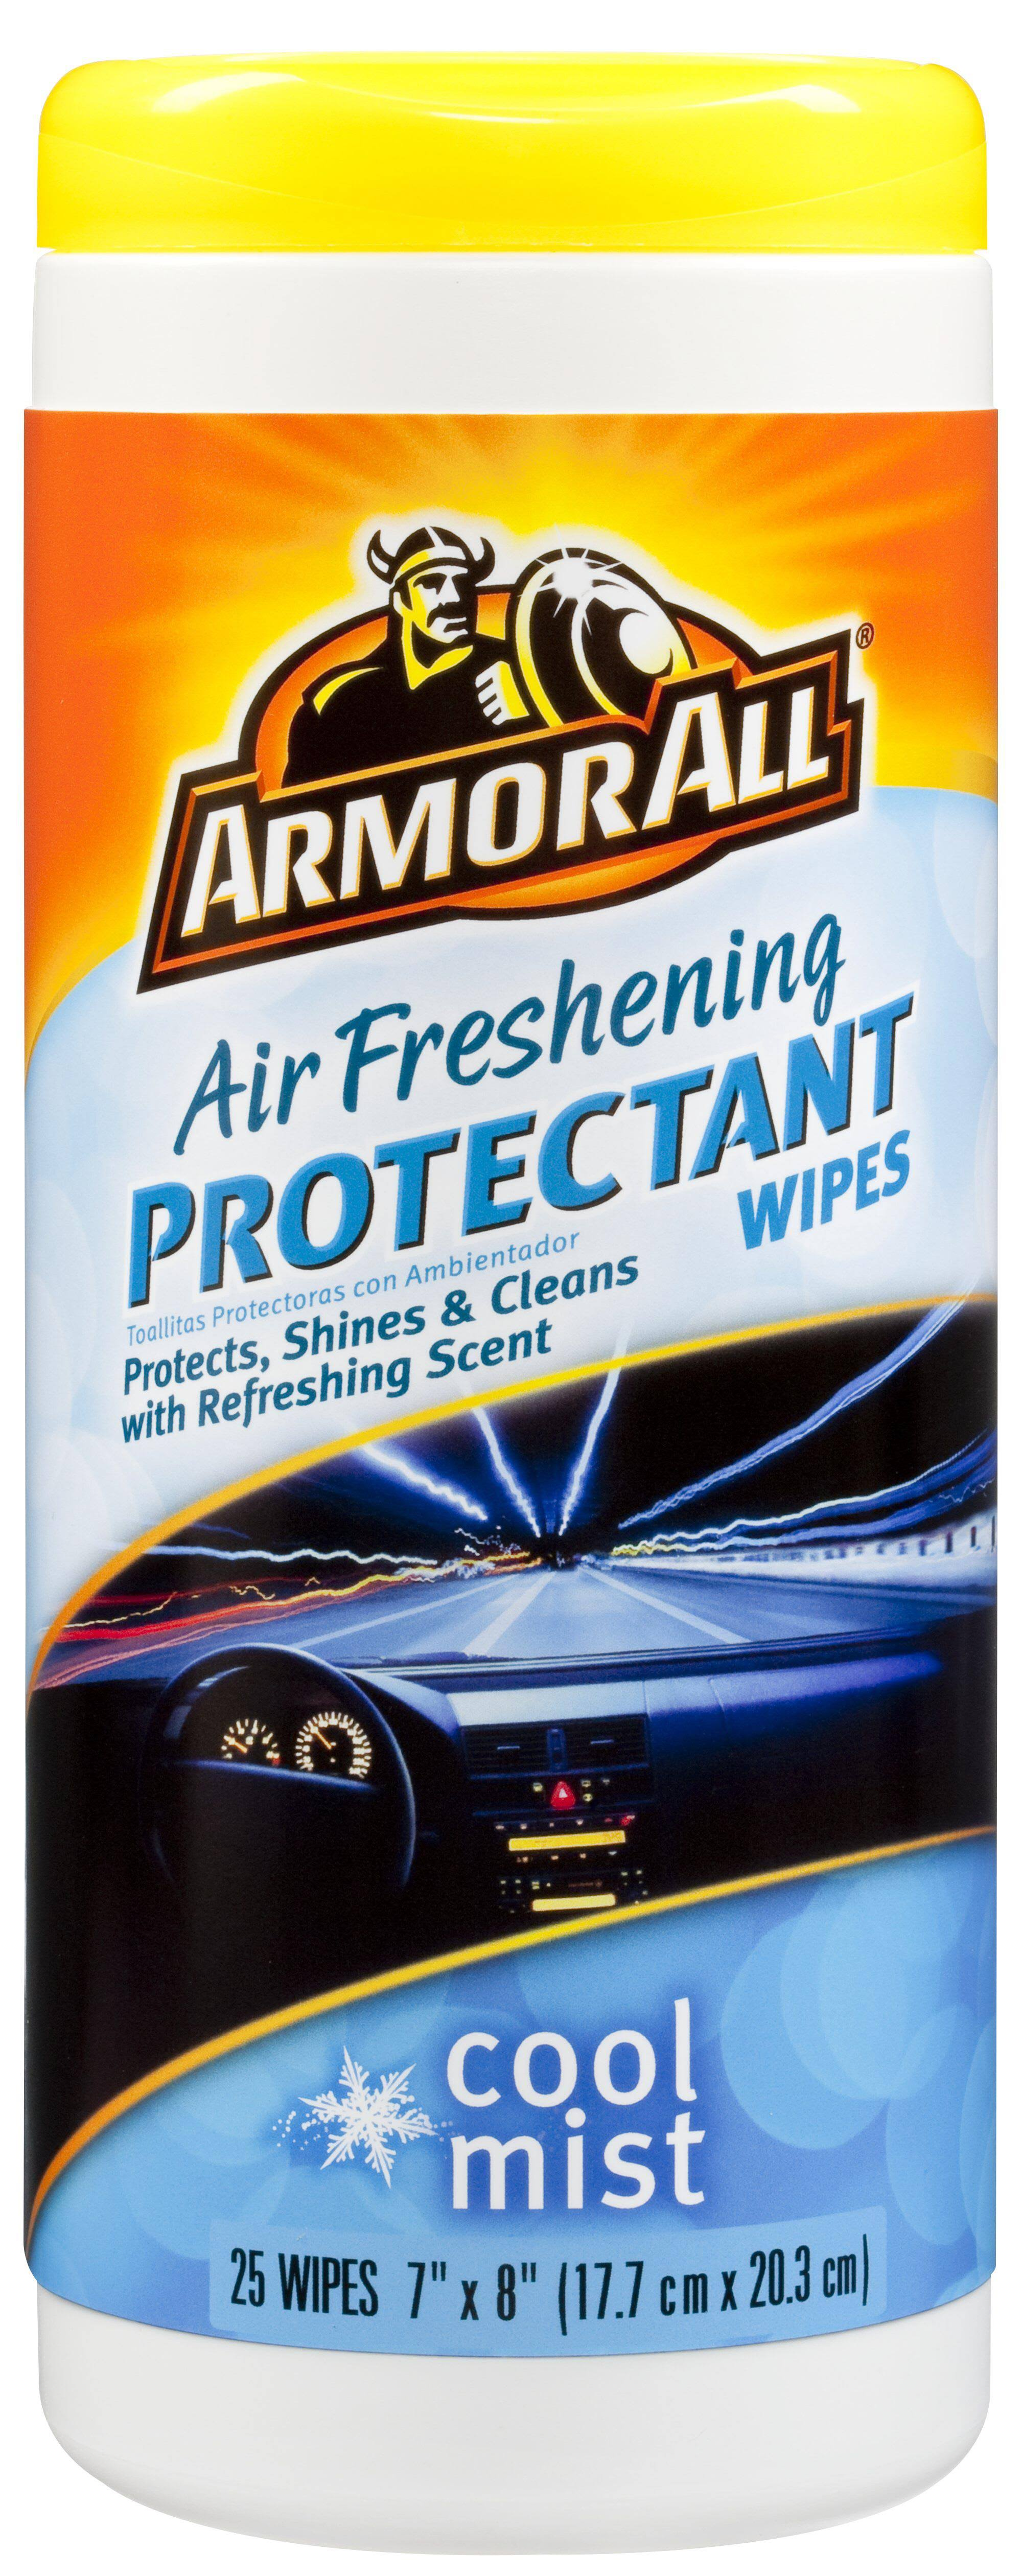 Armor All Air Freshening Protectant Wipes - Cool Mist